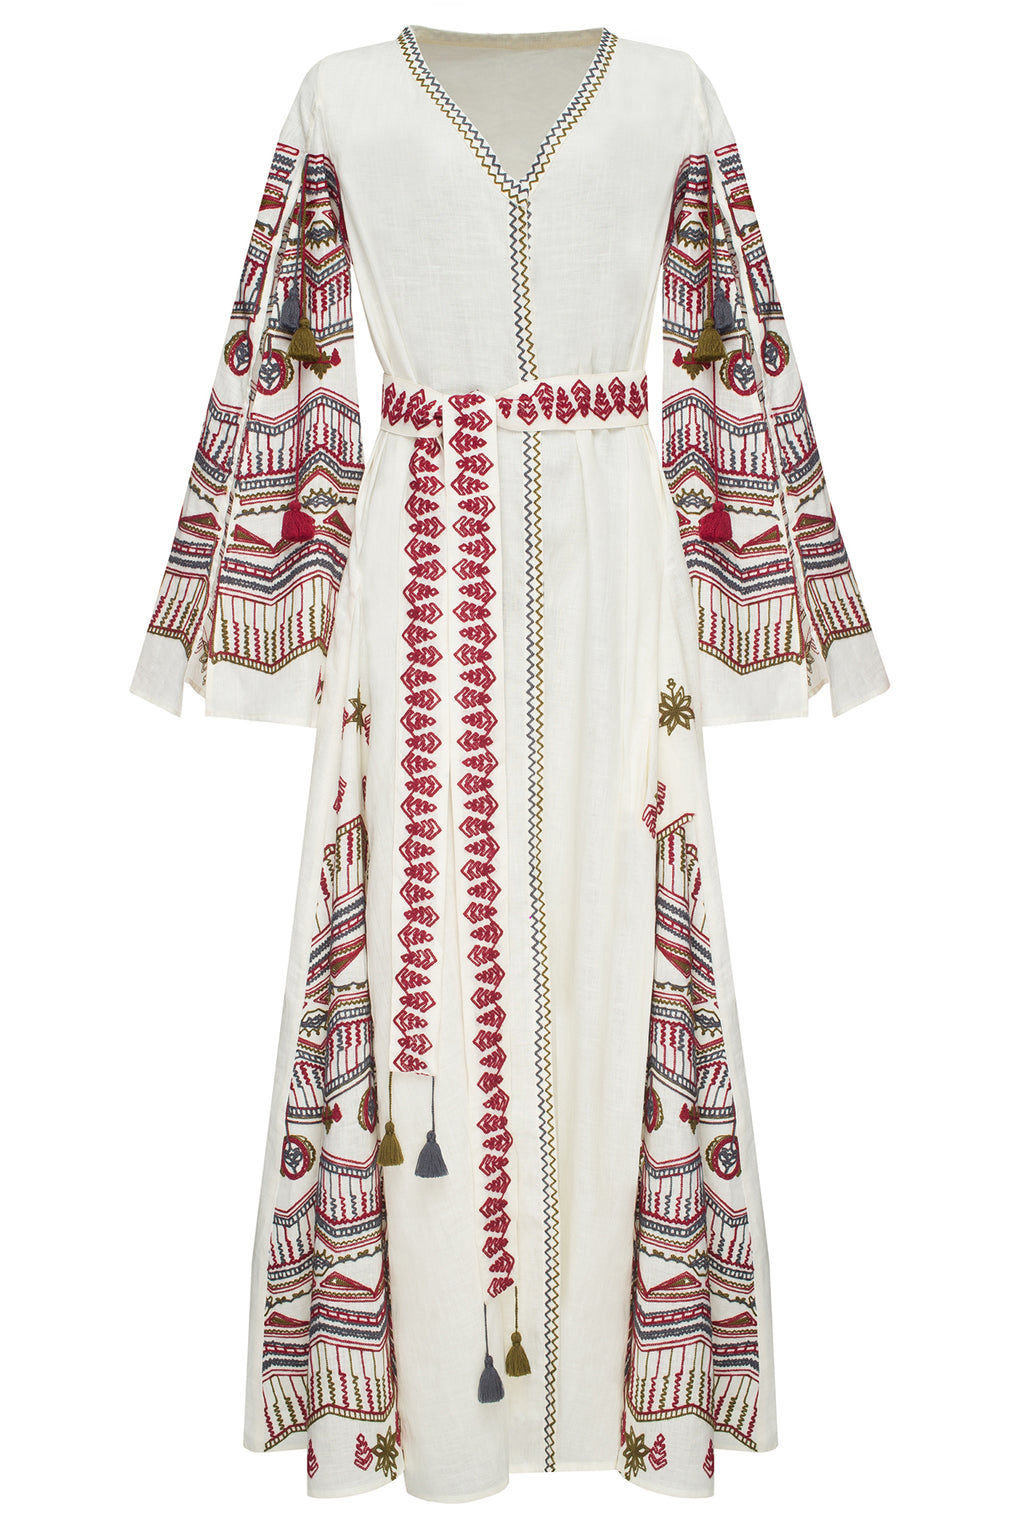 SUN RAY maxi dress in beige linen